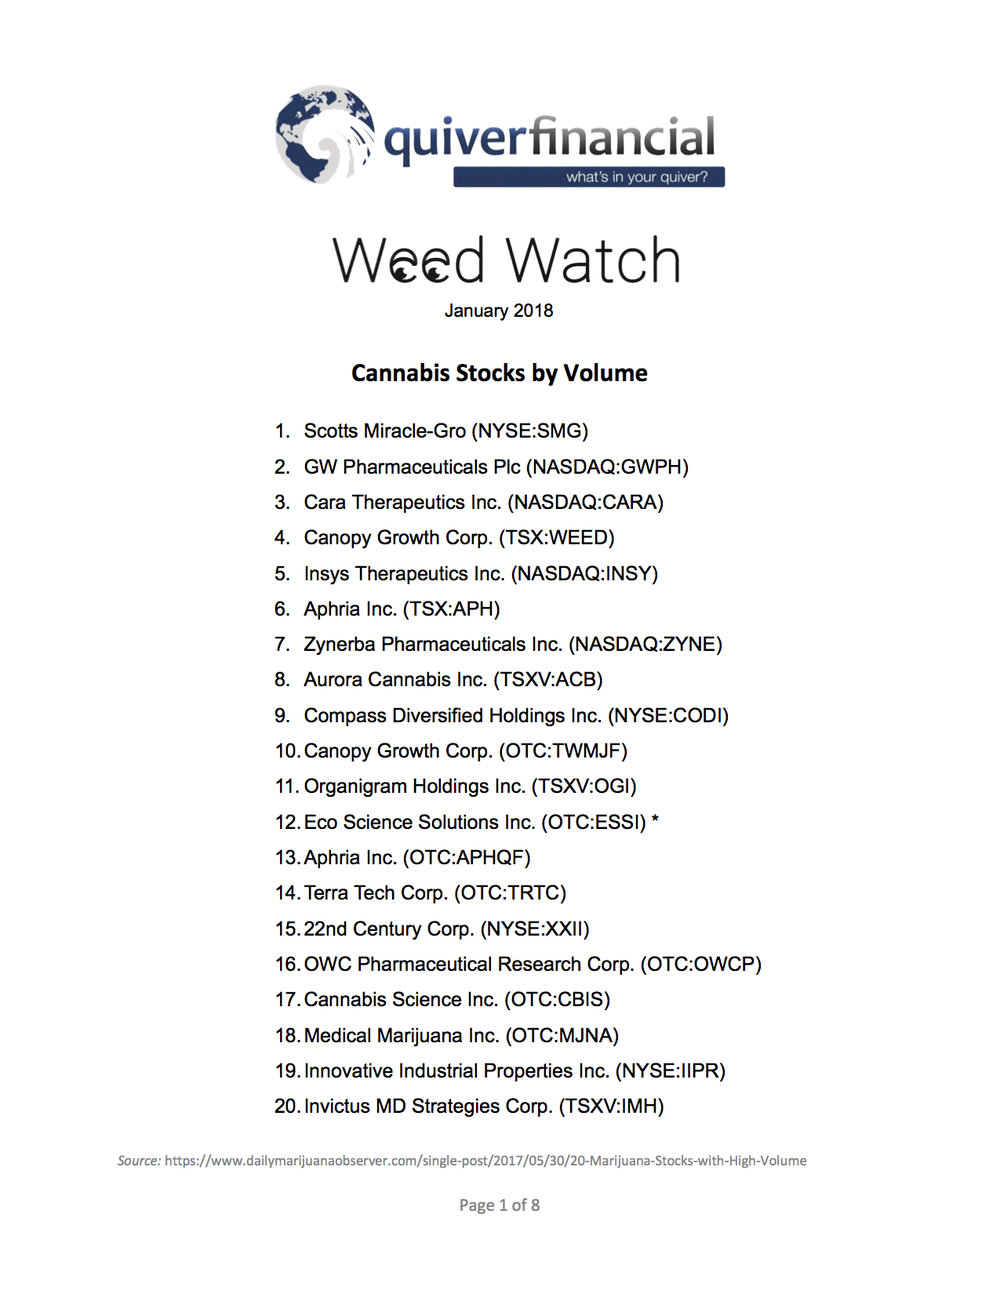 Weed Watch by Quiver Financial.jpg